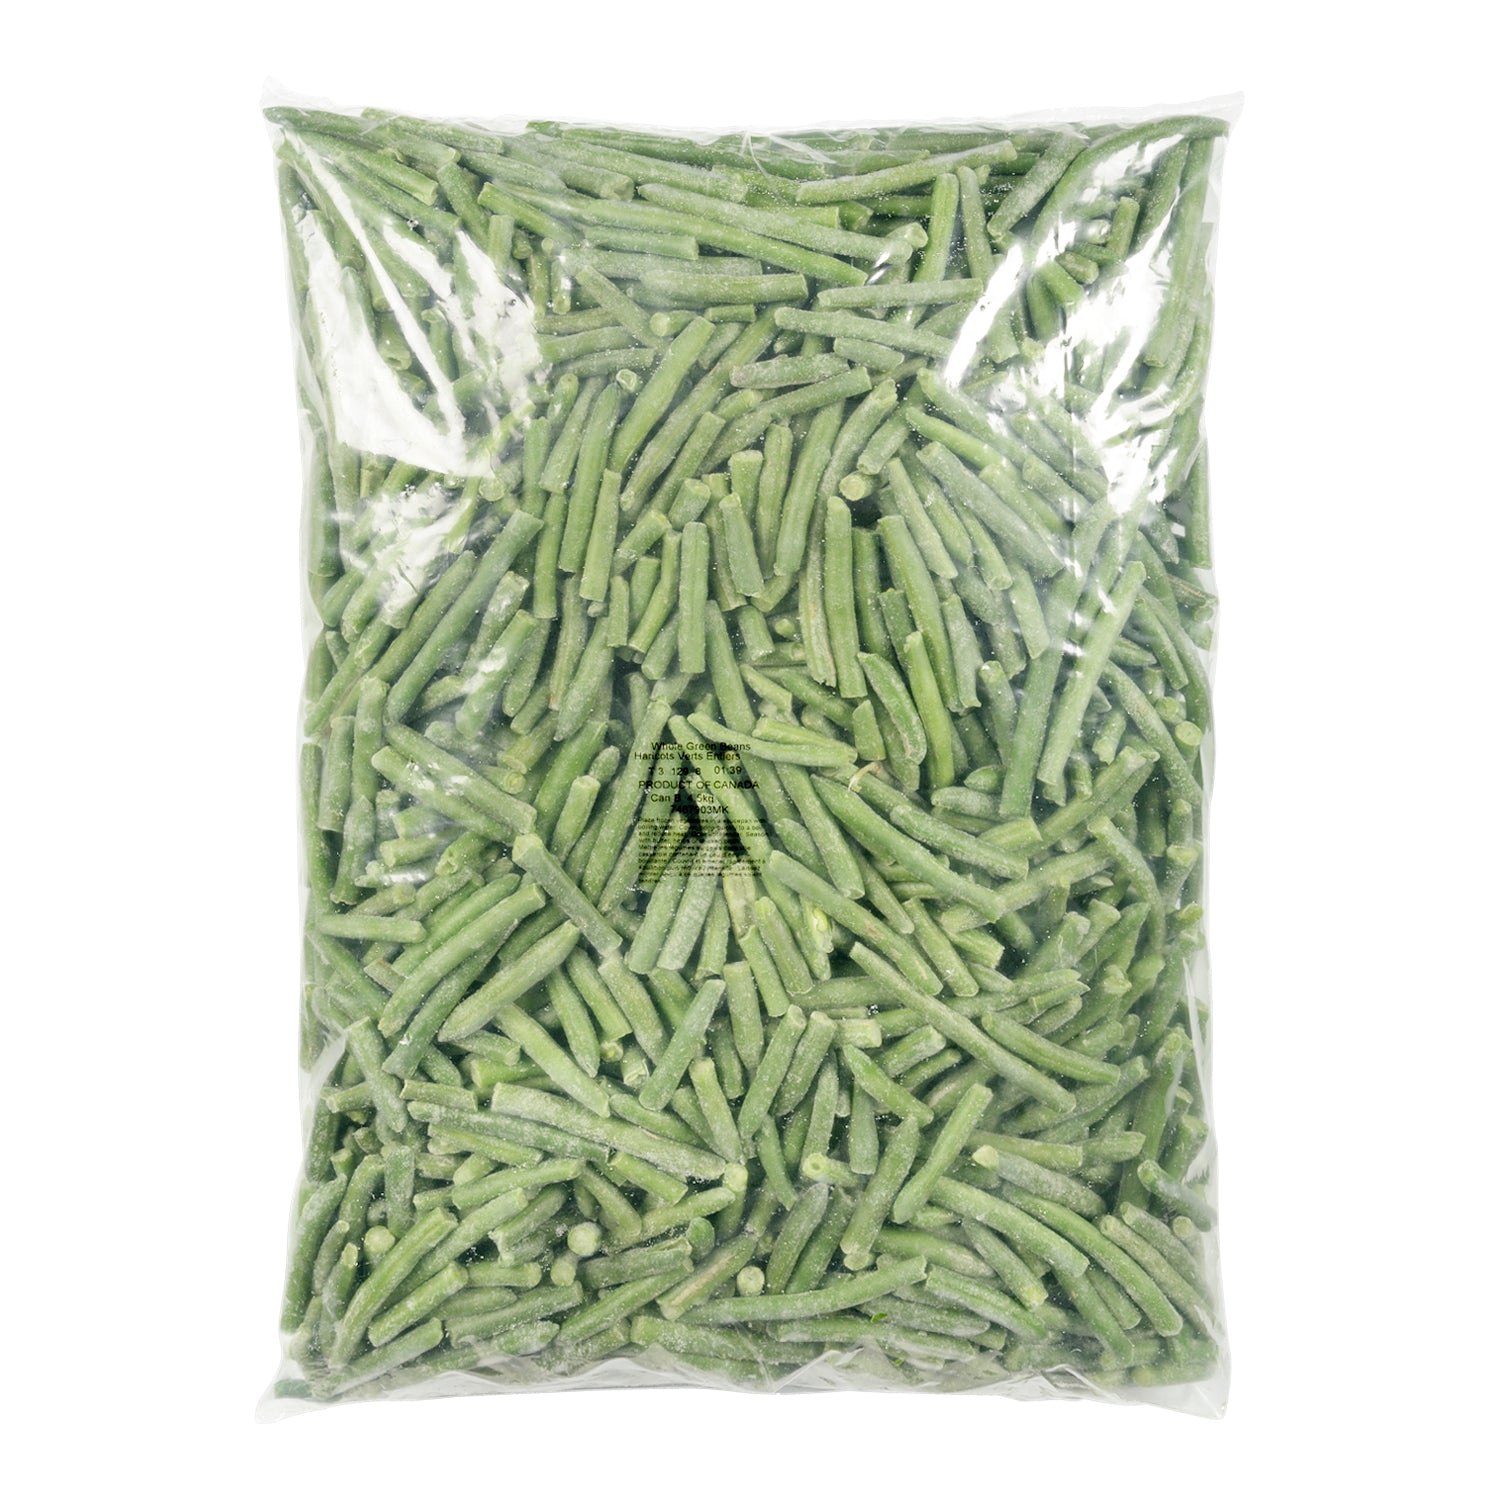 Sysco Reliance Frozen Whole Green Beans 4.5 kg - 2 Pack [$2.98/kg]